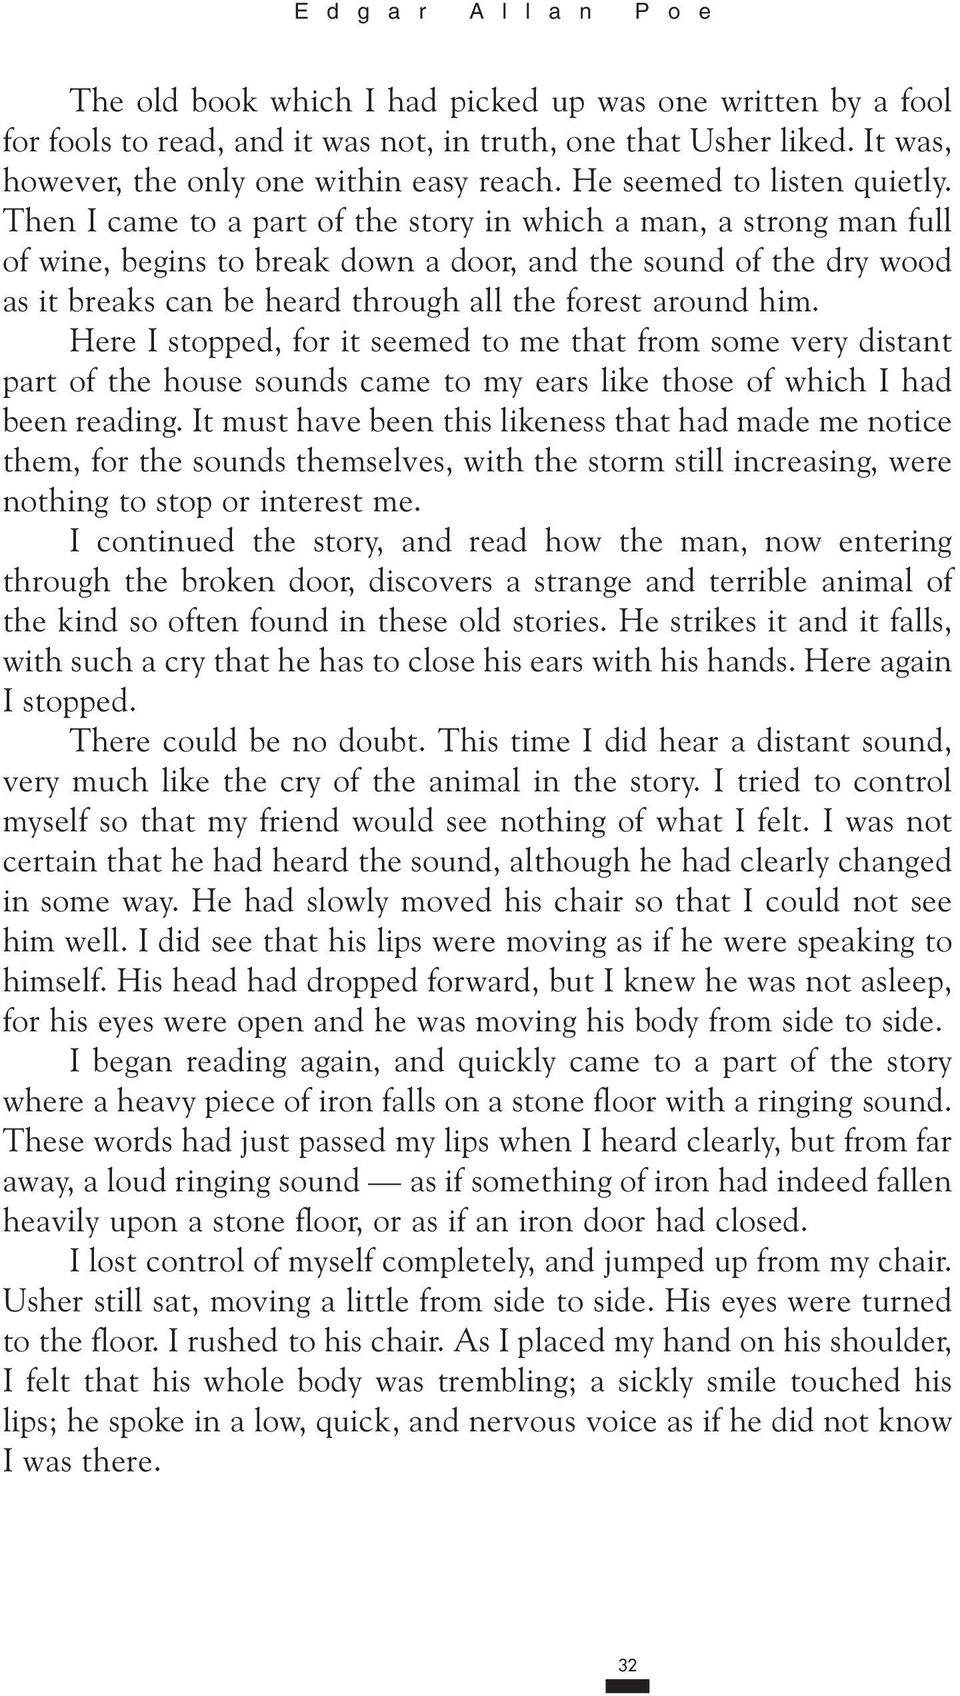 Then I came to a part of the story in which a man, a strong man full of wine, begins to break down a door, and the sound of the dry wood as it breaks can be heard through all the forest around him.